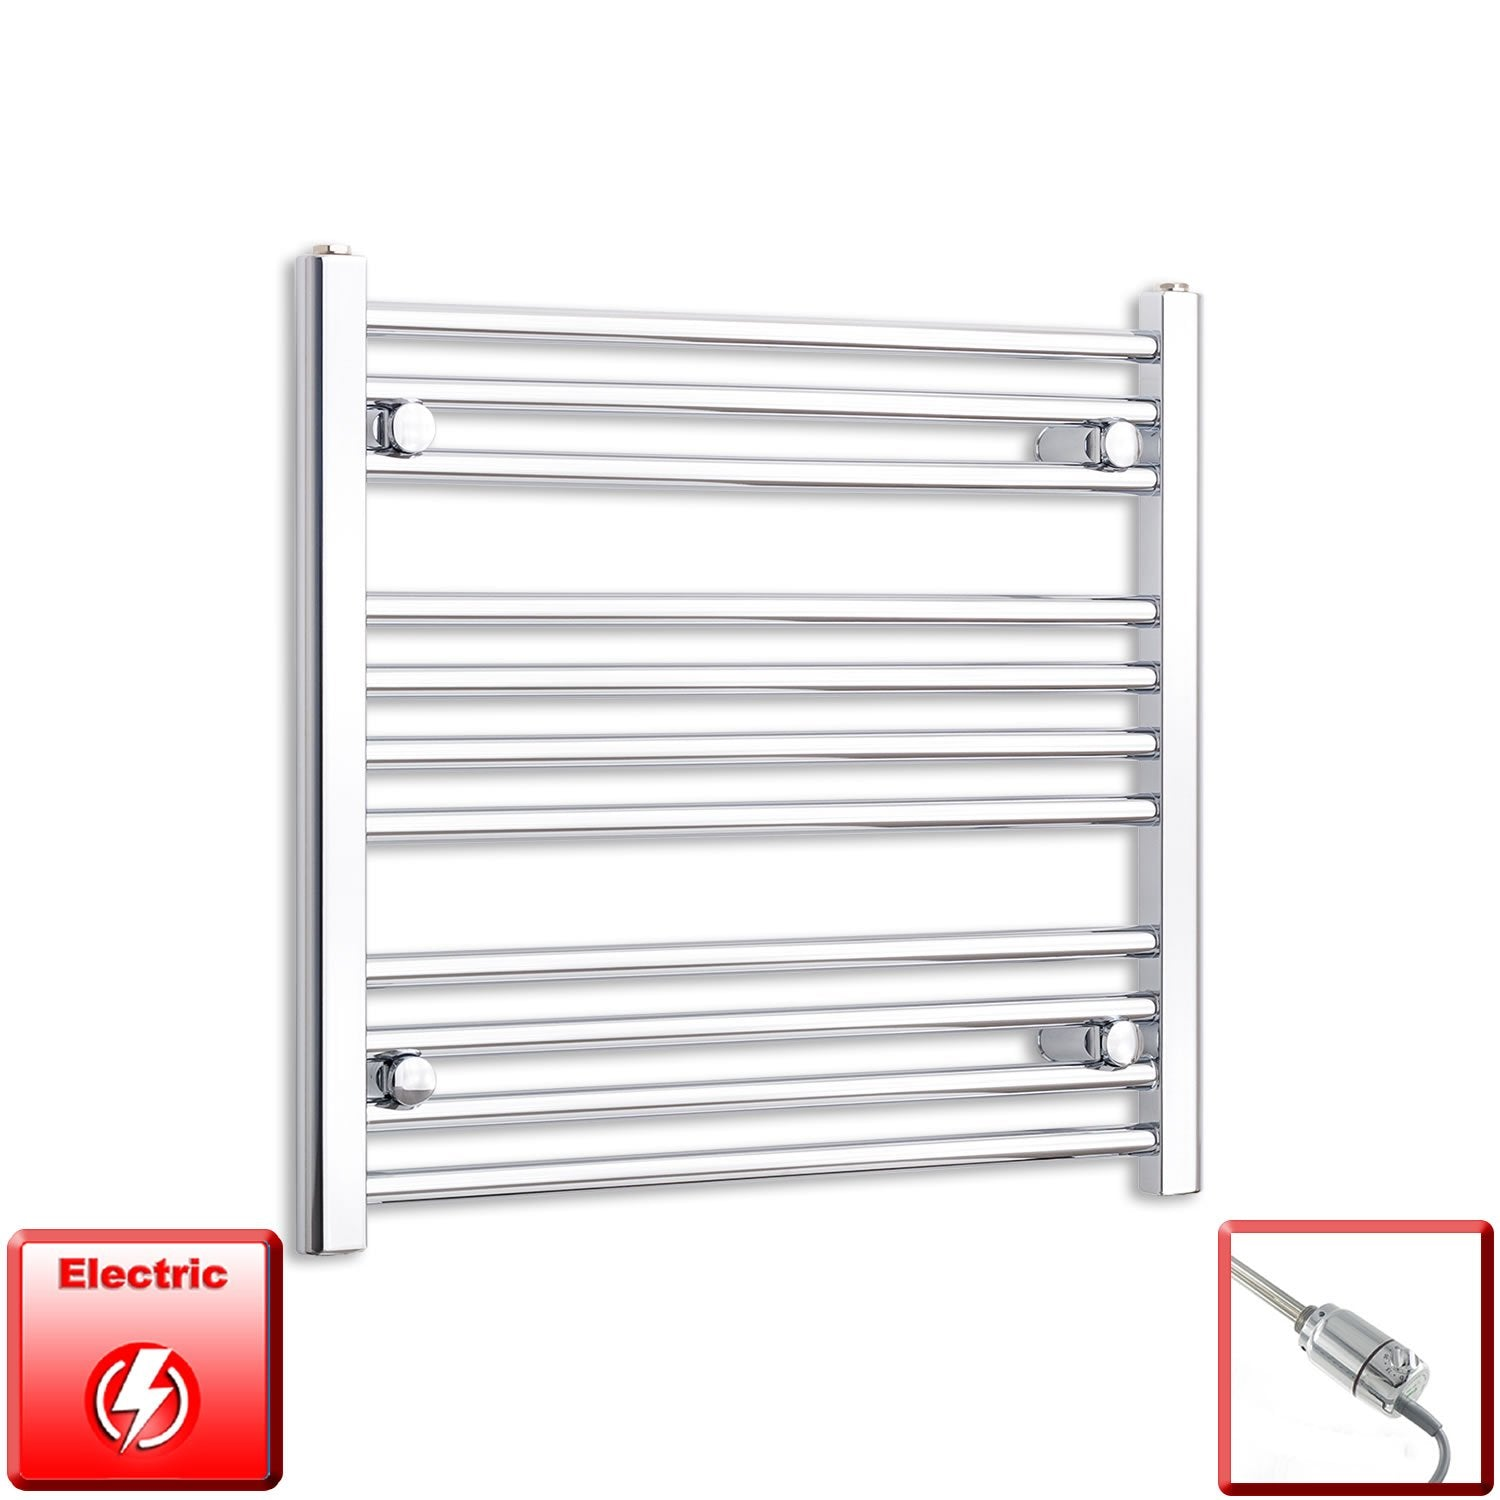 650mm Wide 600mm High Flat Chrome Pre-Filled Electric Heated Towel Rail Radiator HTR,GT Thermostatic